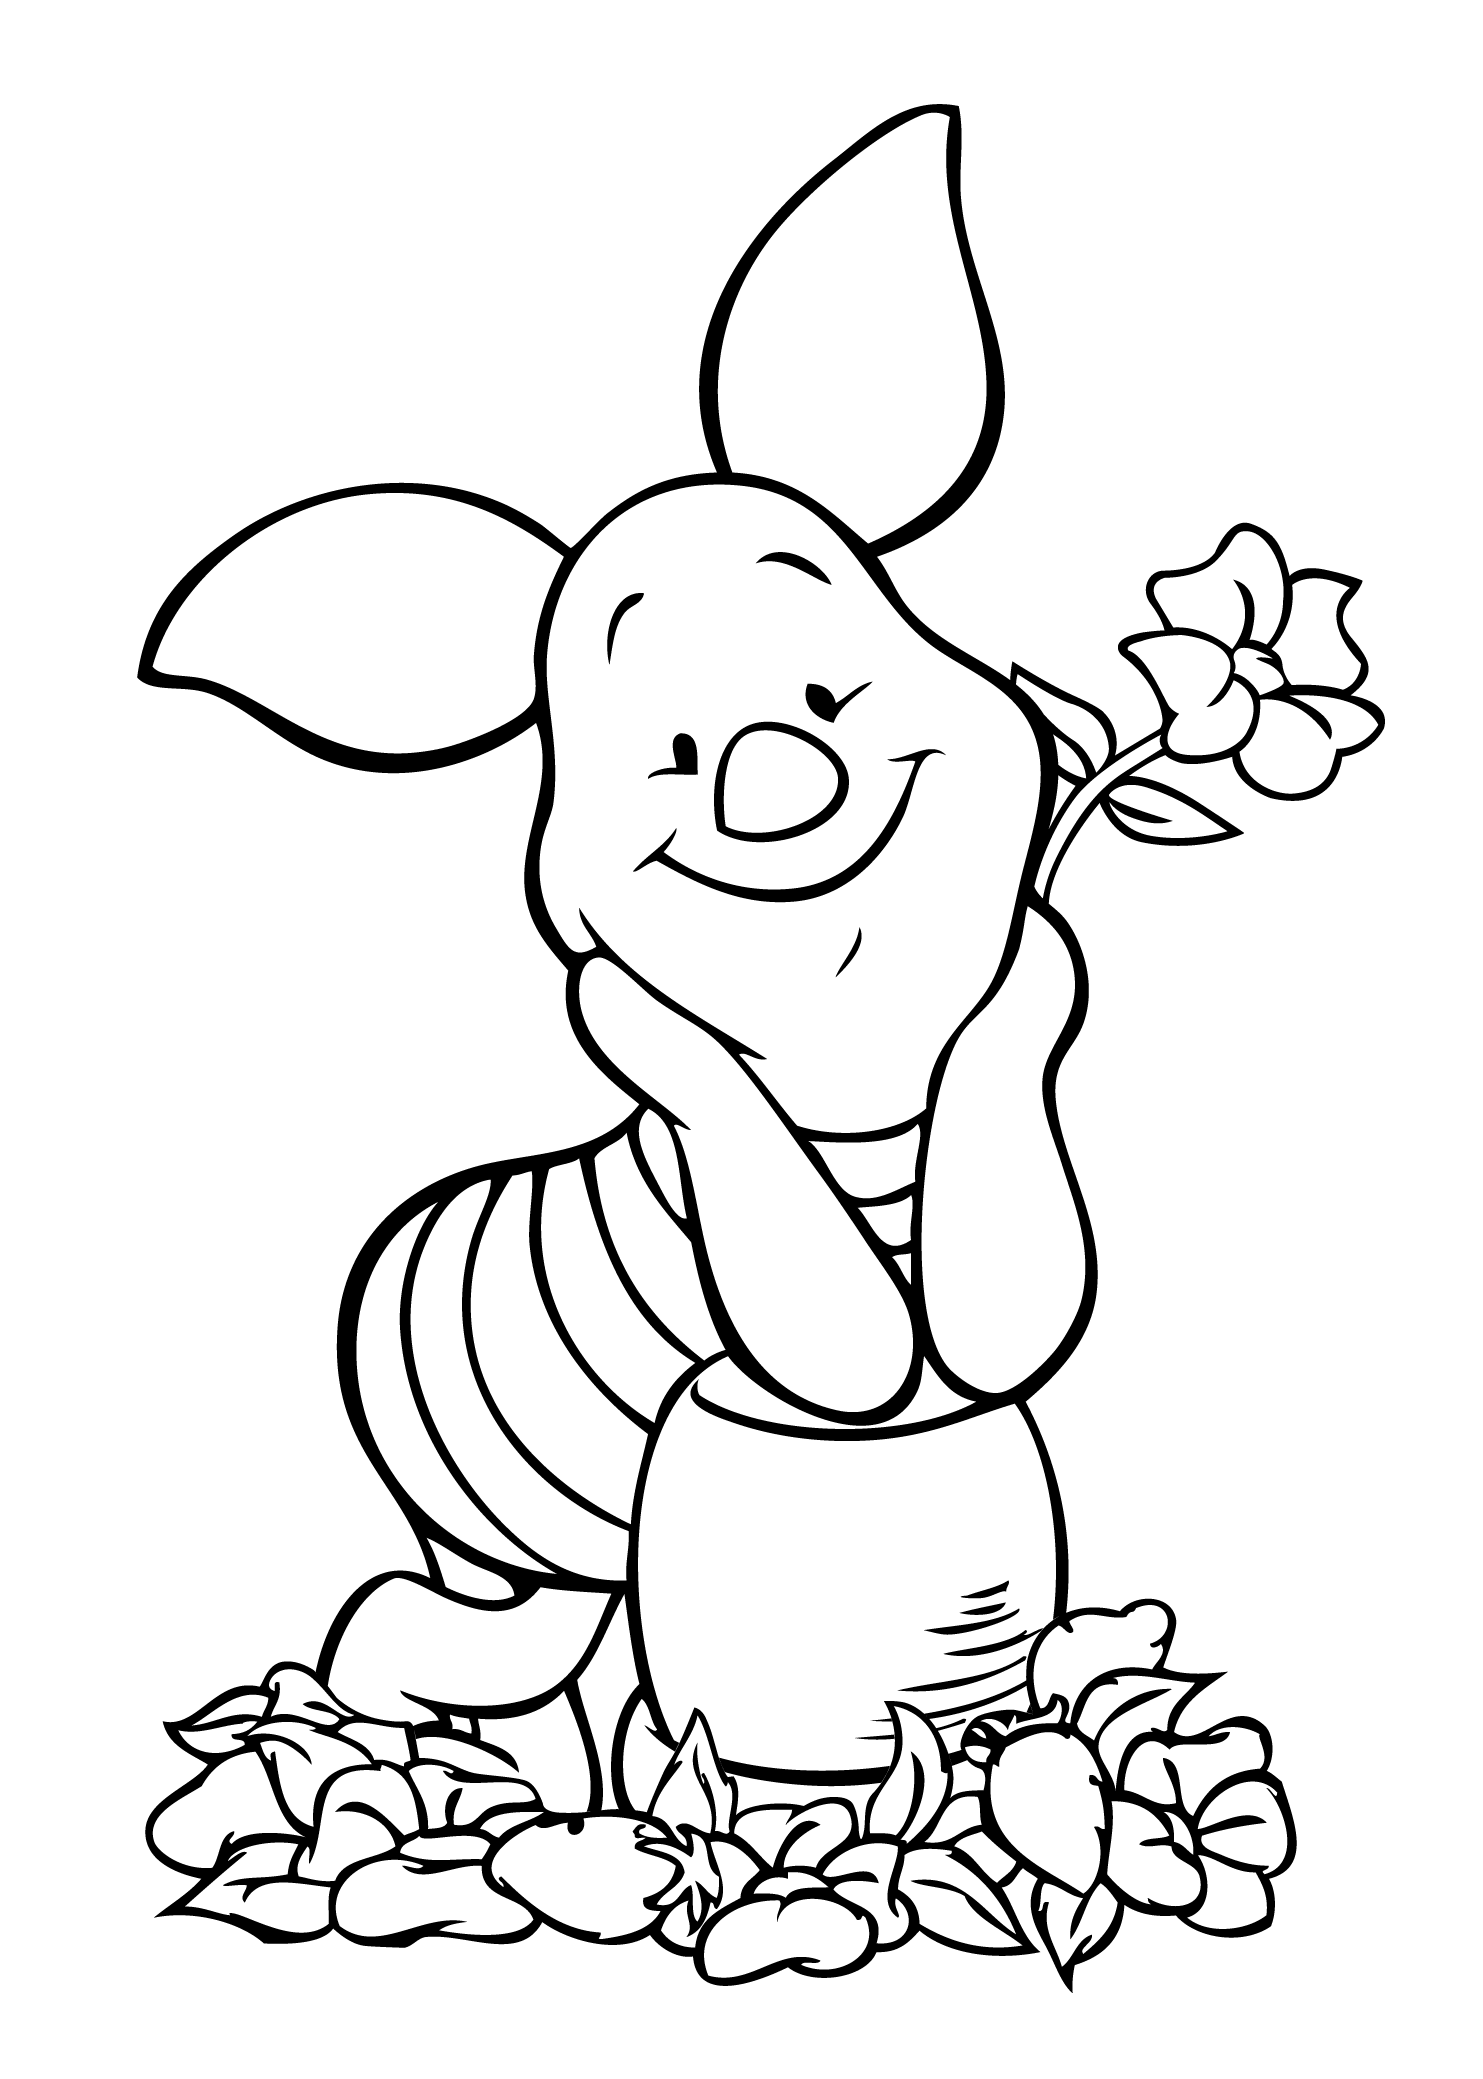 Winnie pooh piglet coloring page babysitting activities